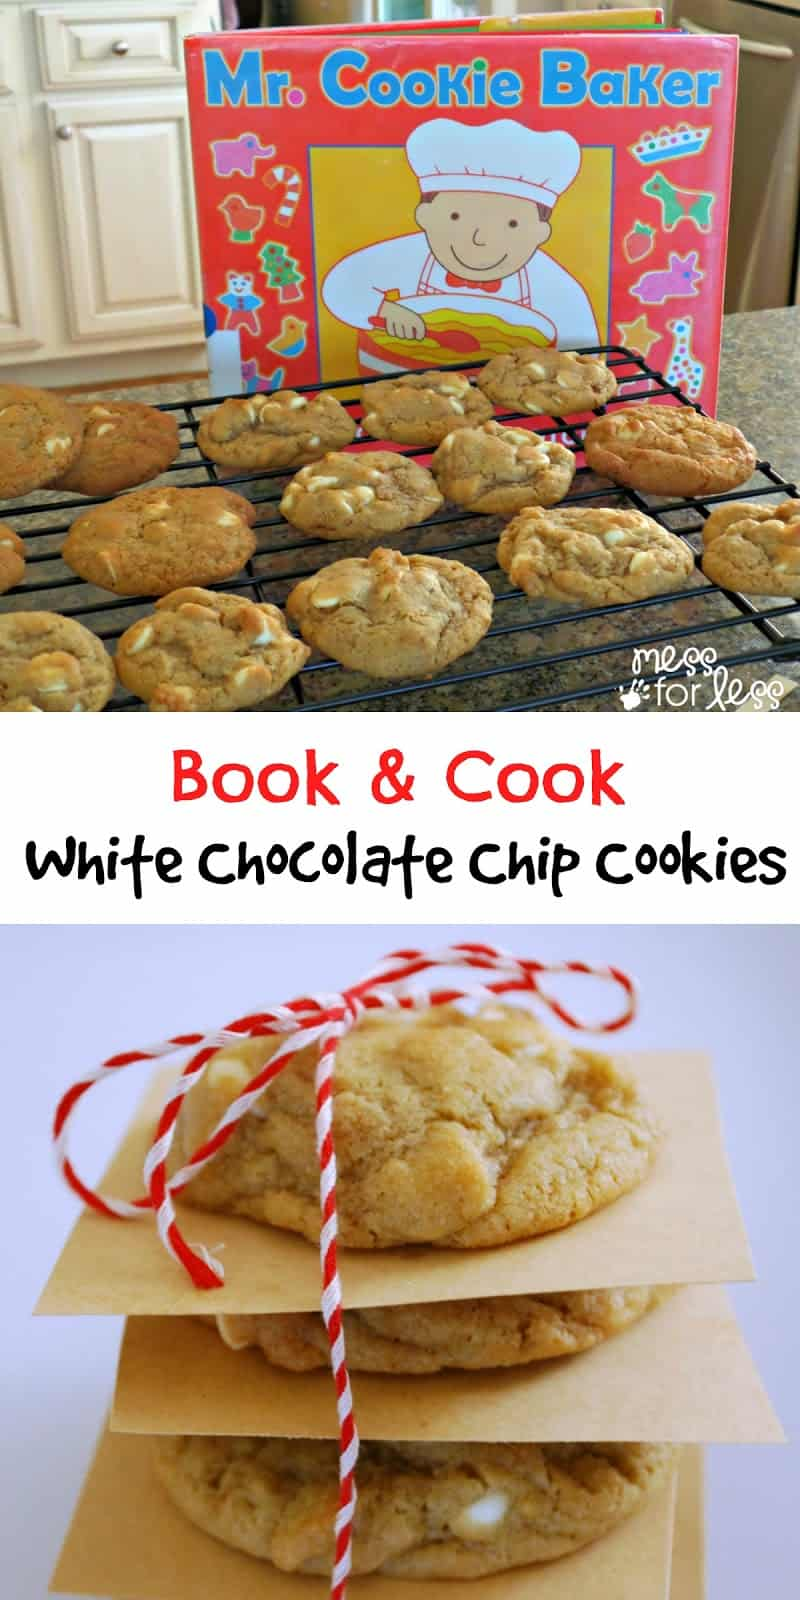 Book and Cook - White Chocolate Chip Cookies. We made this cookies after reading the book Mr. Baker. A great way to bring a book to life!